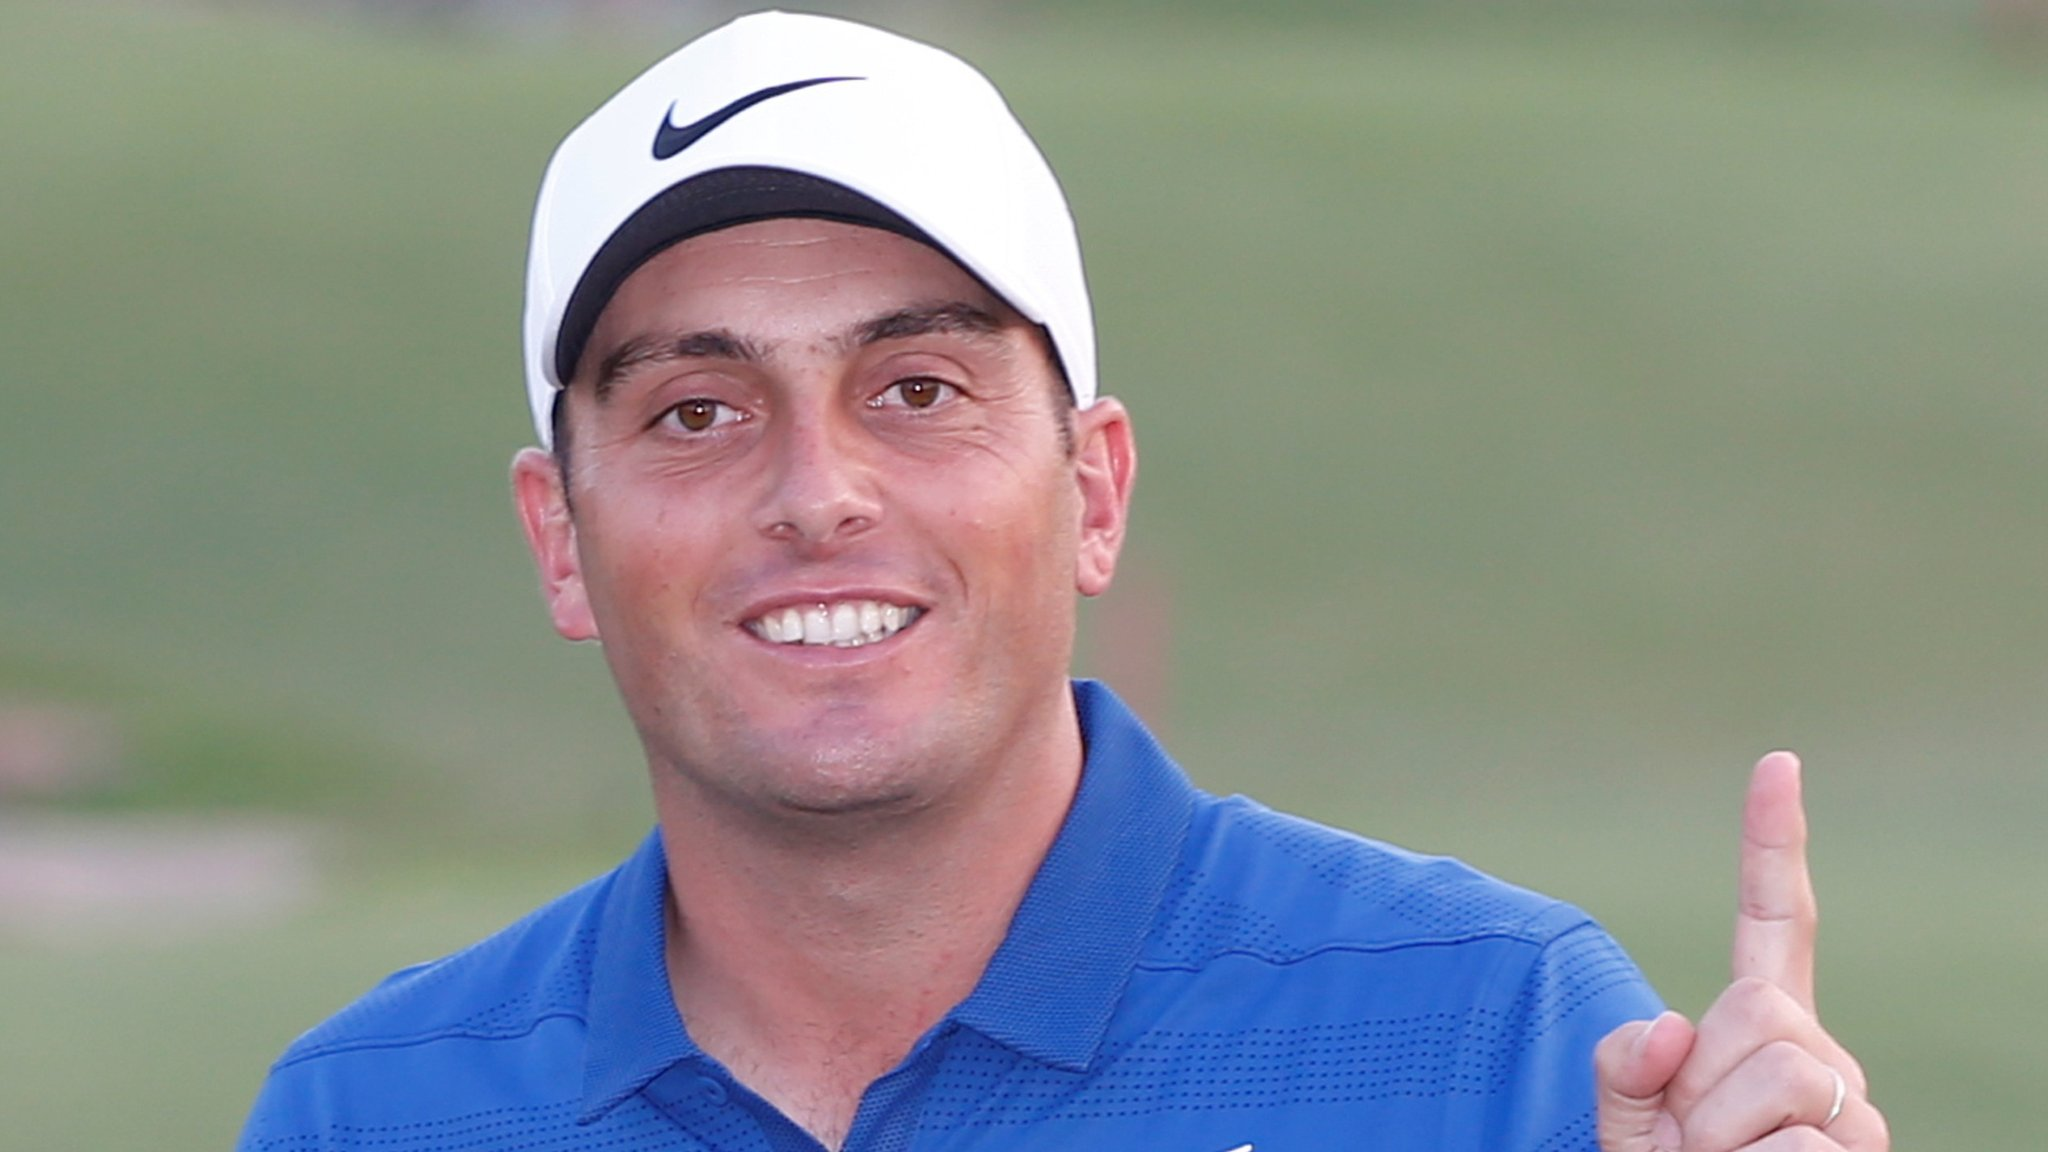 Fleetwood beaten by Molinari in Race to Dubai